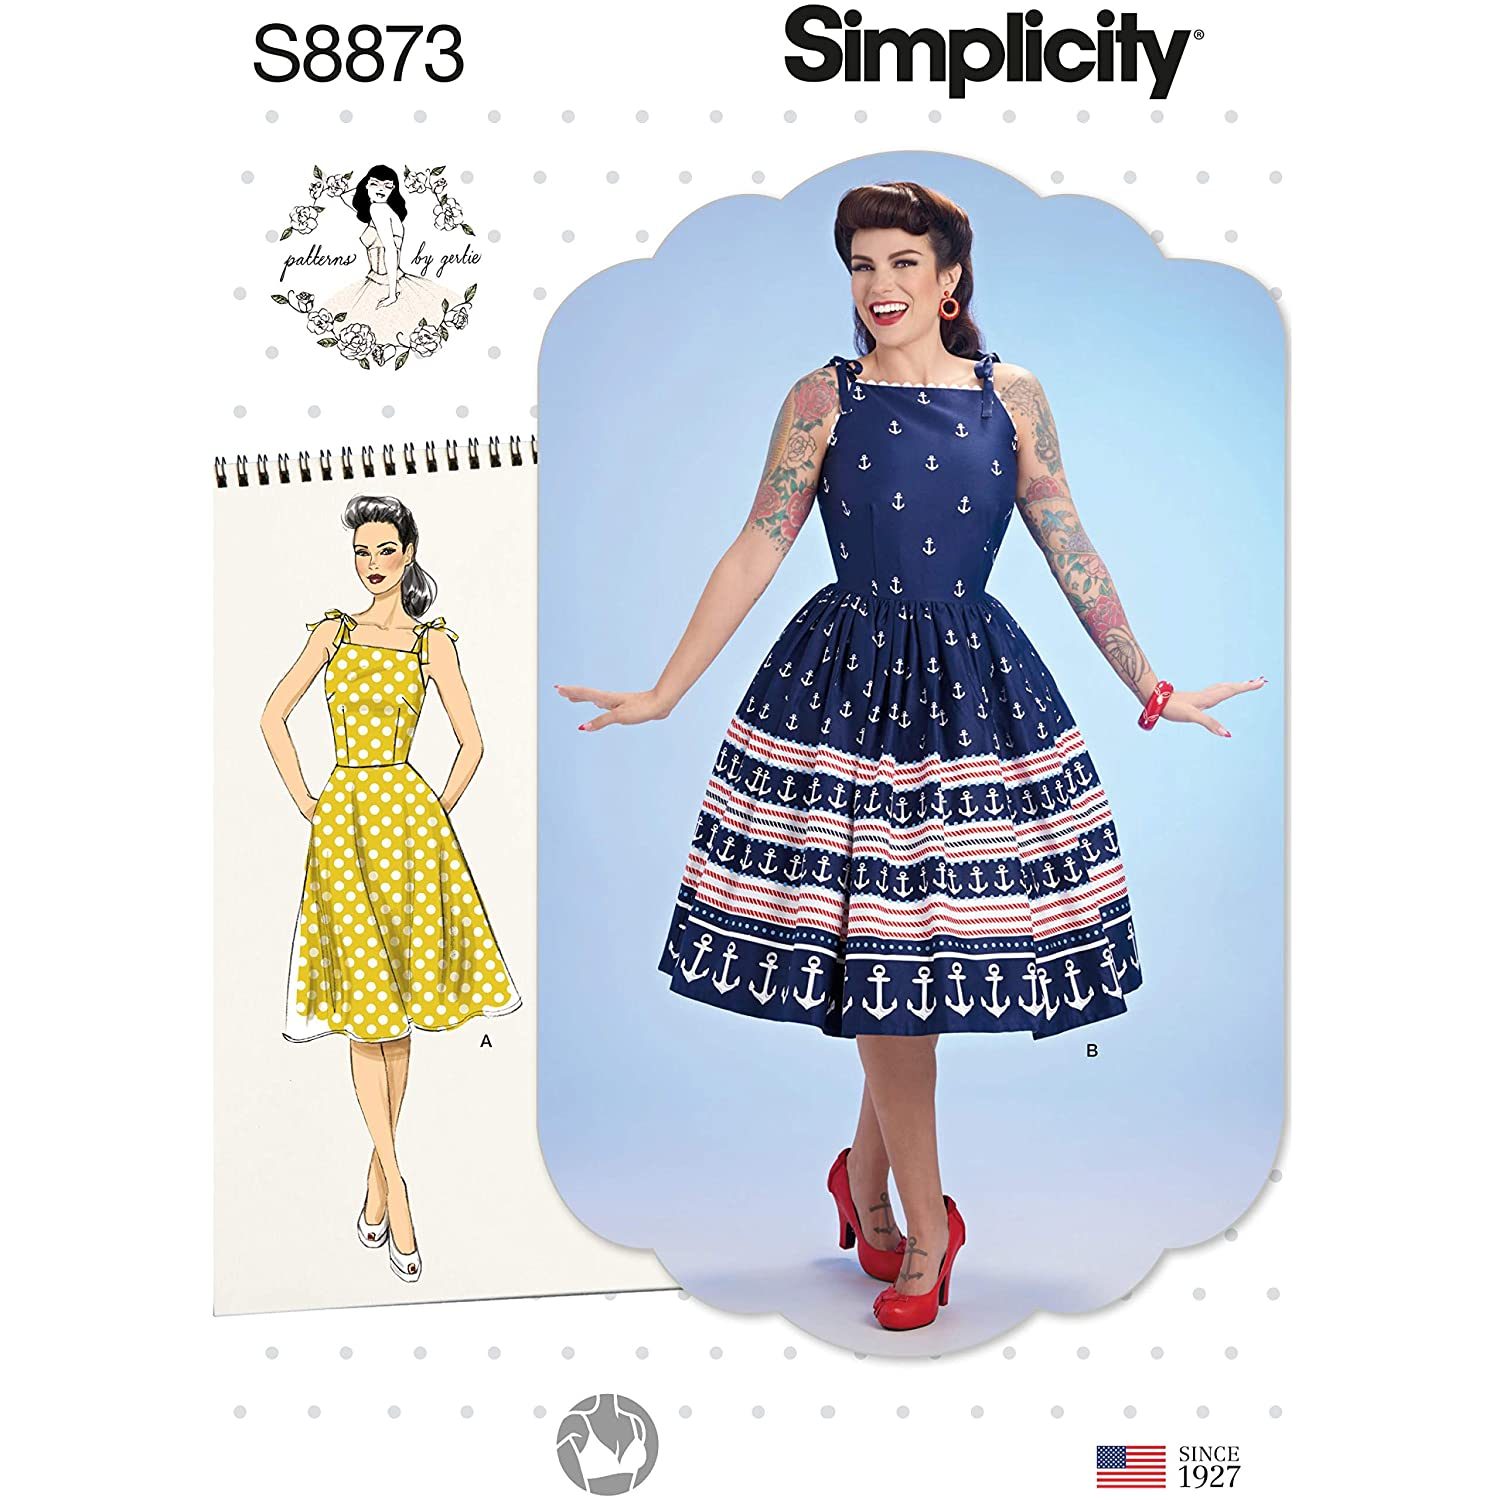 1950s Sewing Patterns | Dresses, Skirts, Tops, Mens Simplicity Dress-12-14-16-18-20 $13.00 AT vintagedancer.com